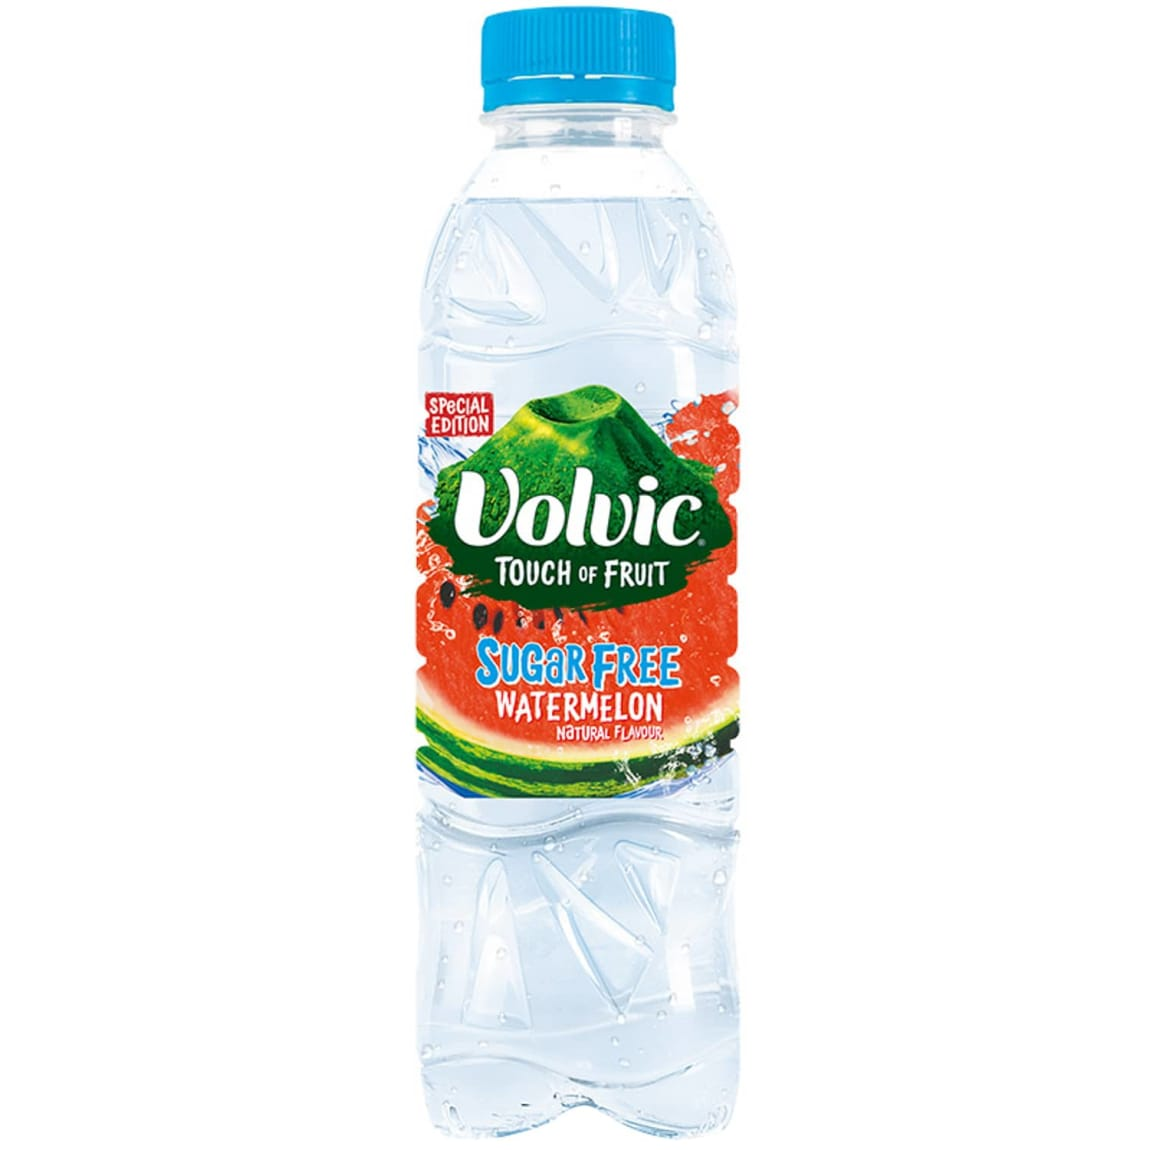 Volvic Touch of Fruit Sugar Free Water 500ml - Watermelon